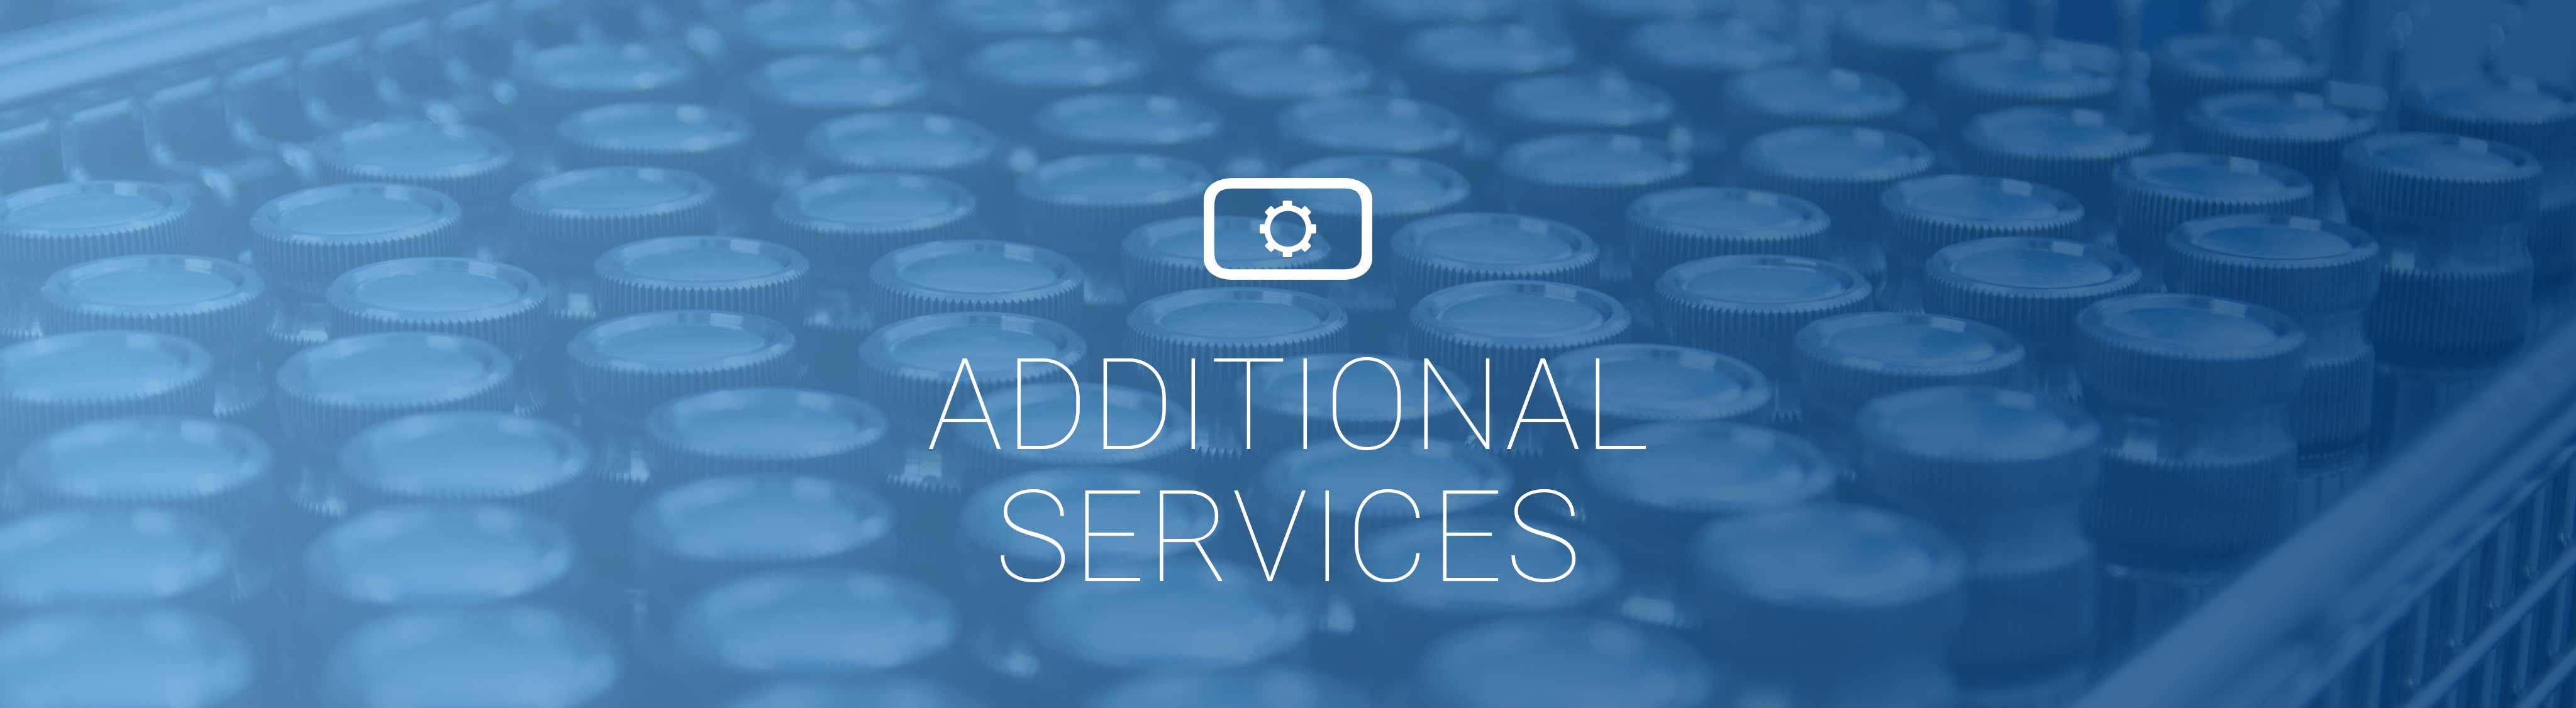 Header_Additional_Services